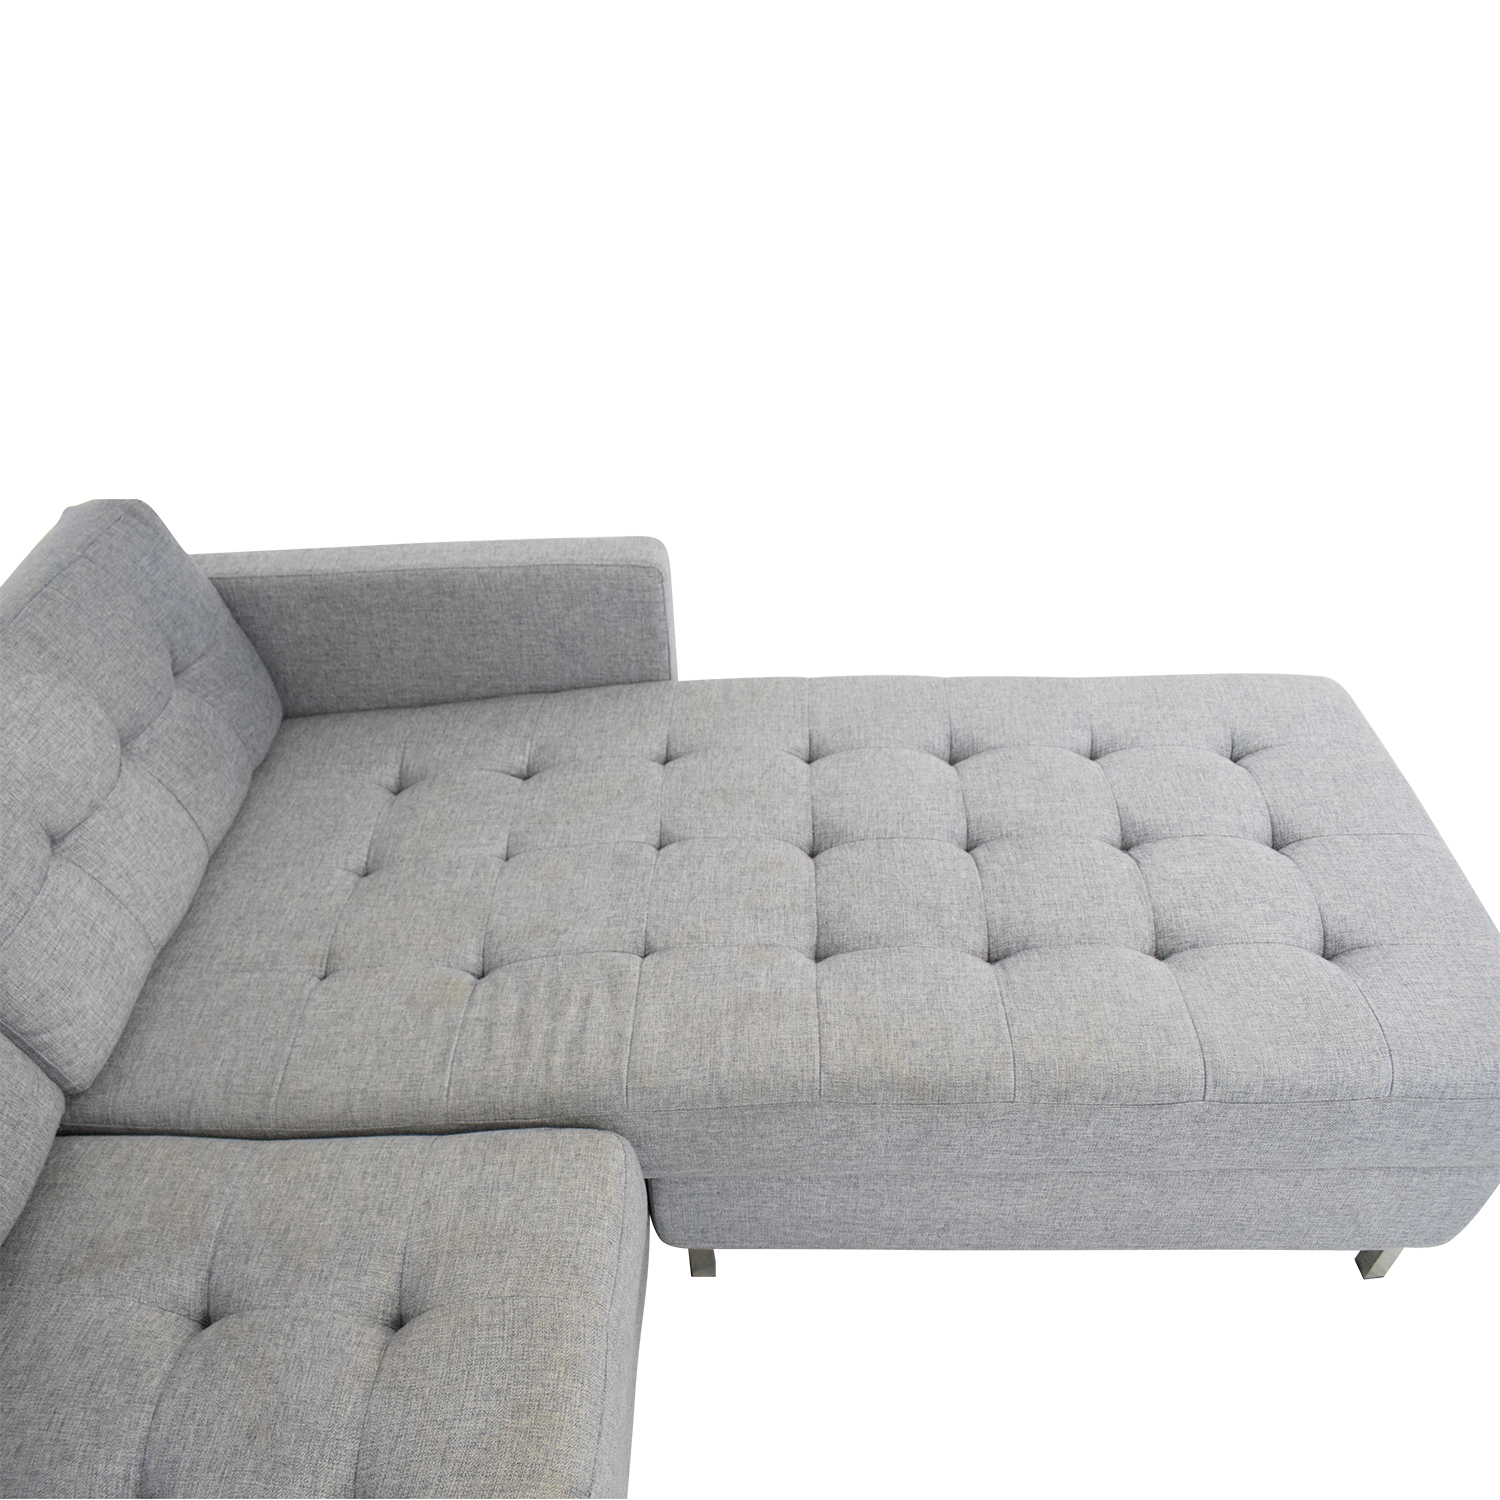 CB2 CB2 Ditto II Sectional Sofa coupon